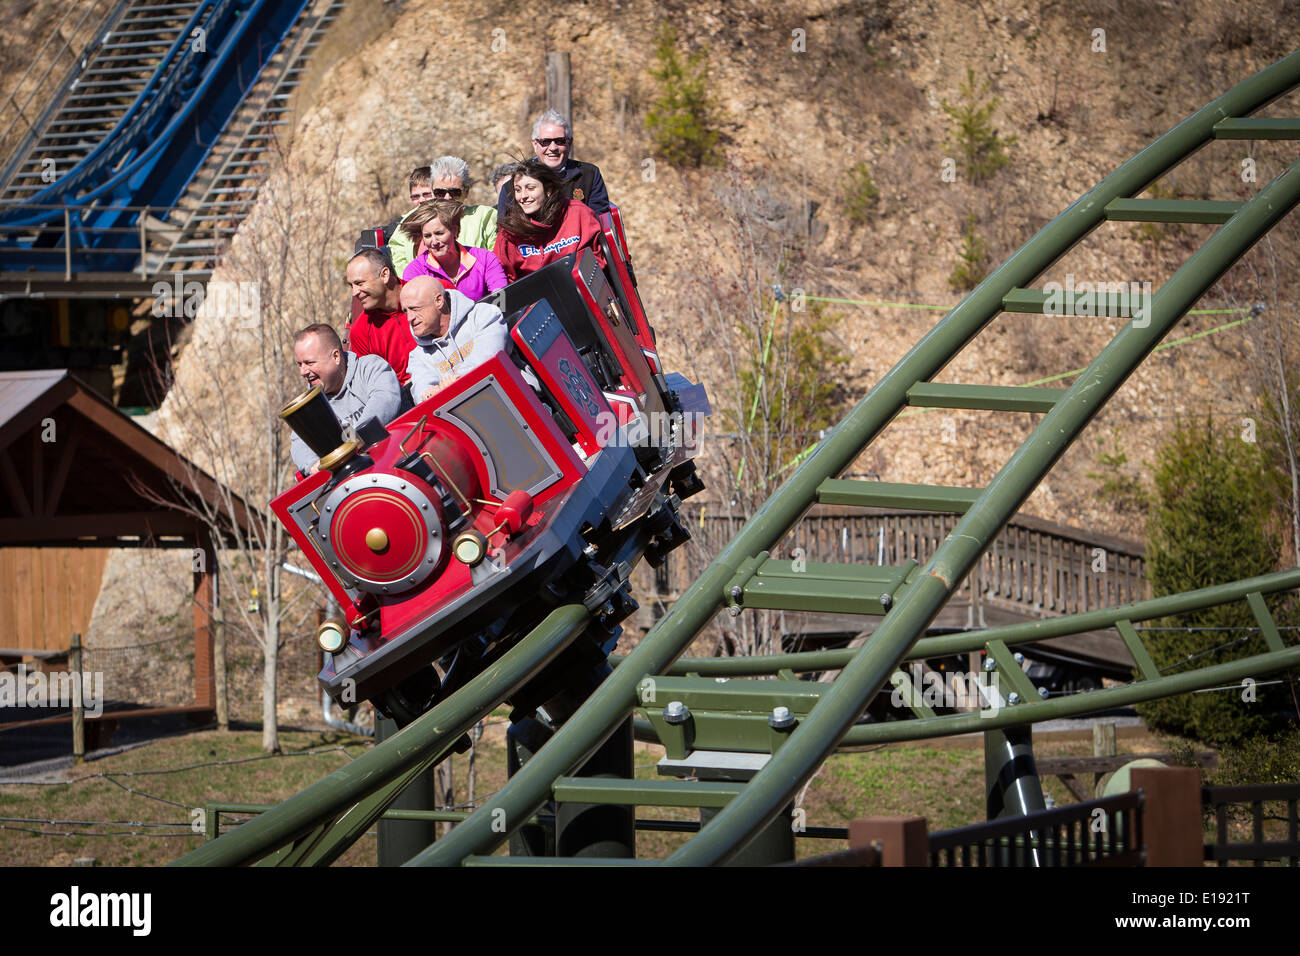 The FireChaser Express roller coaster is pictured in